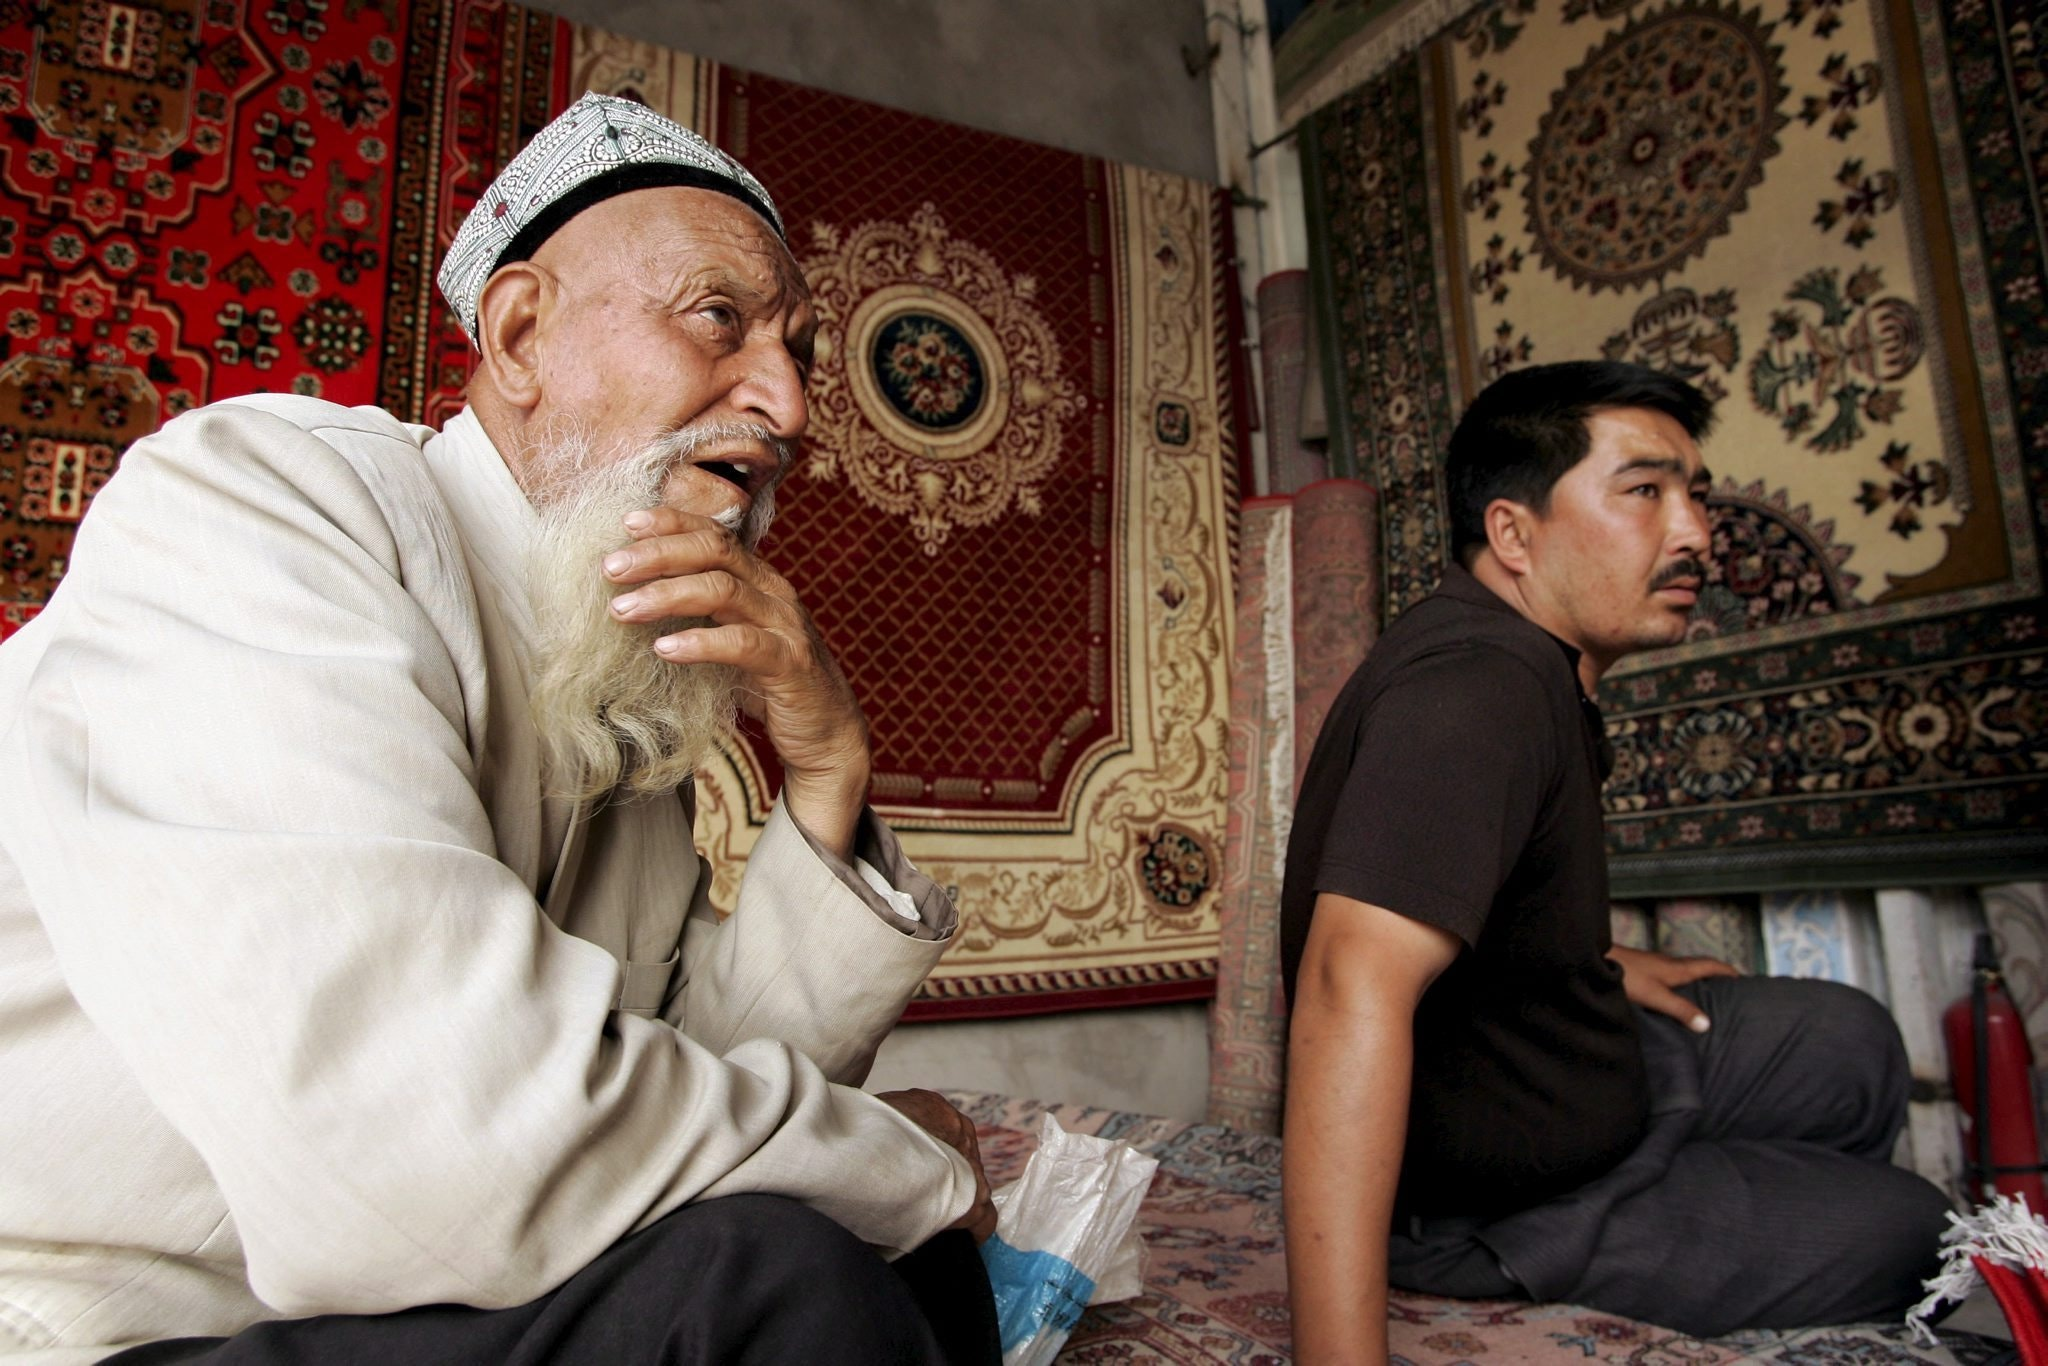 who are the Uyghurs and why is the Chinese government detaining them?